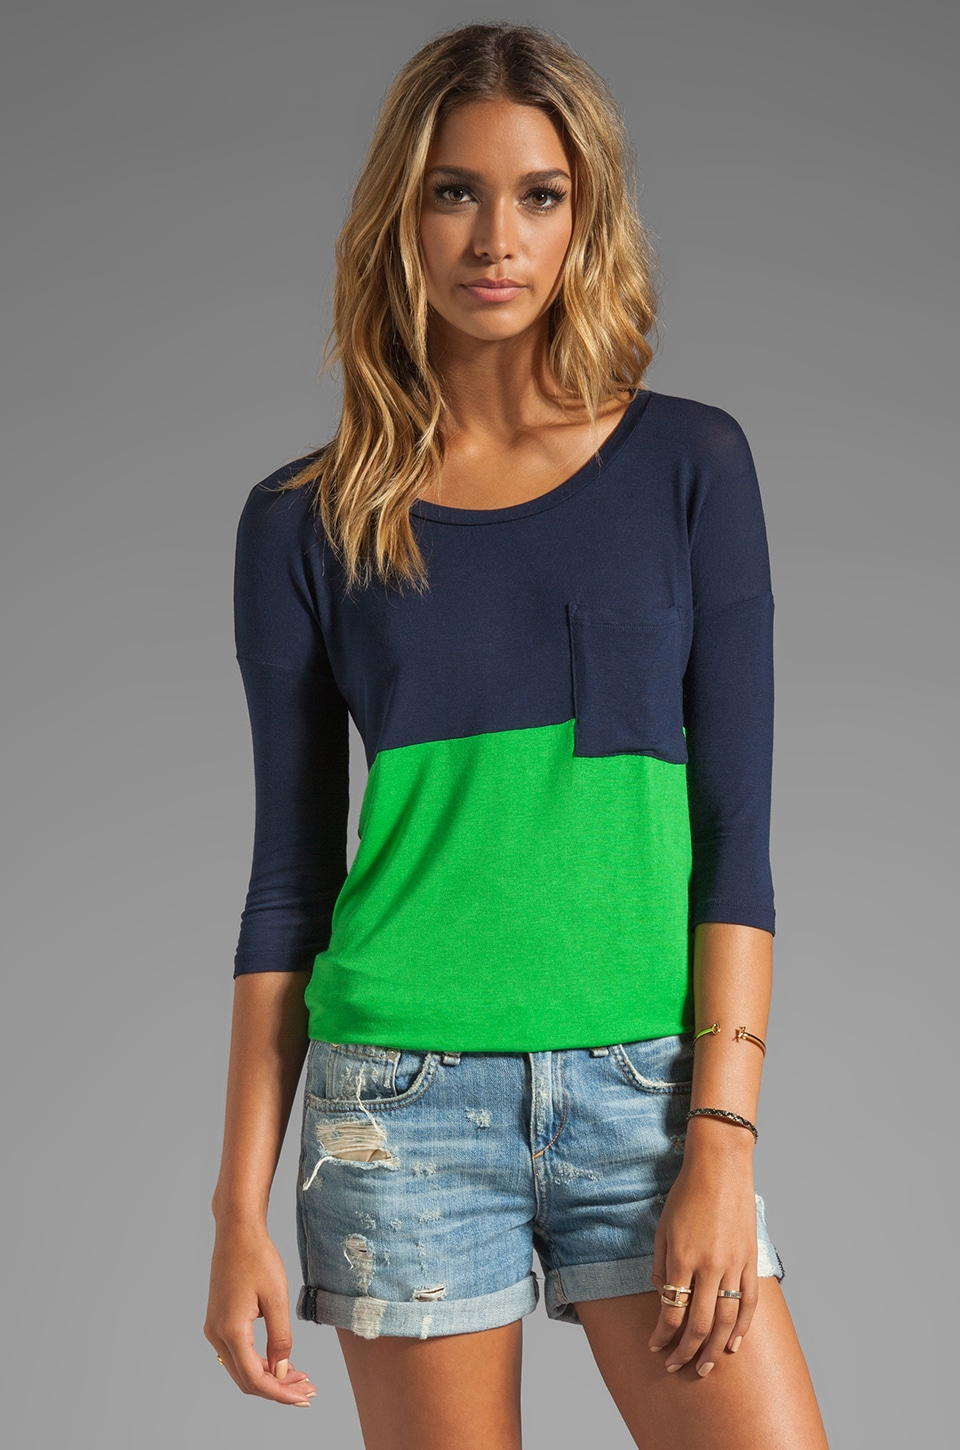 Splendid Drape Lux Jersey Top in Green/Navy